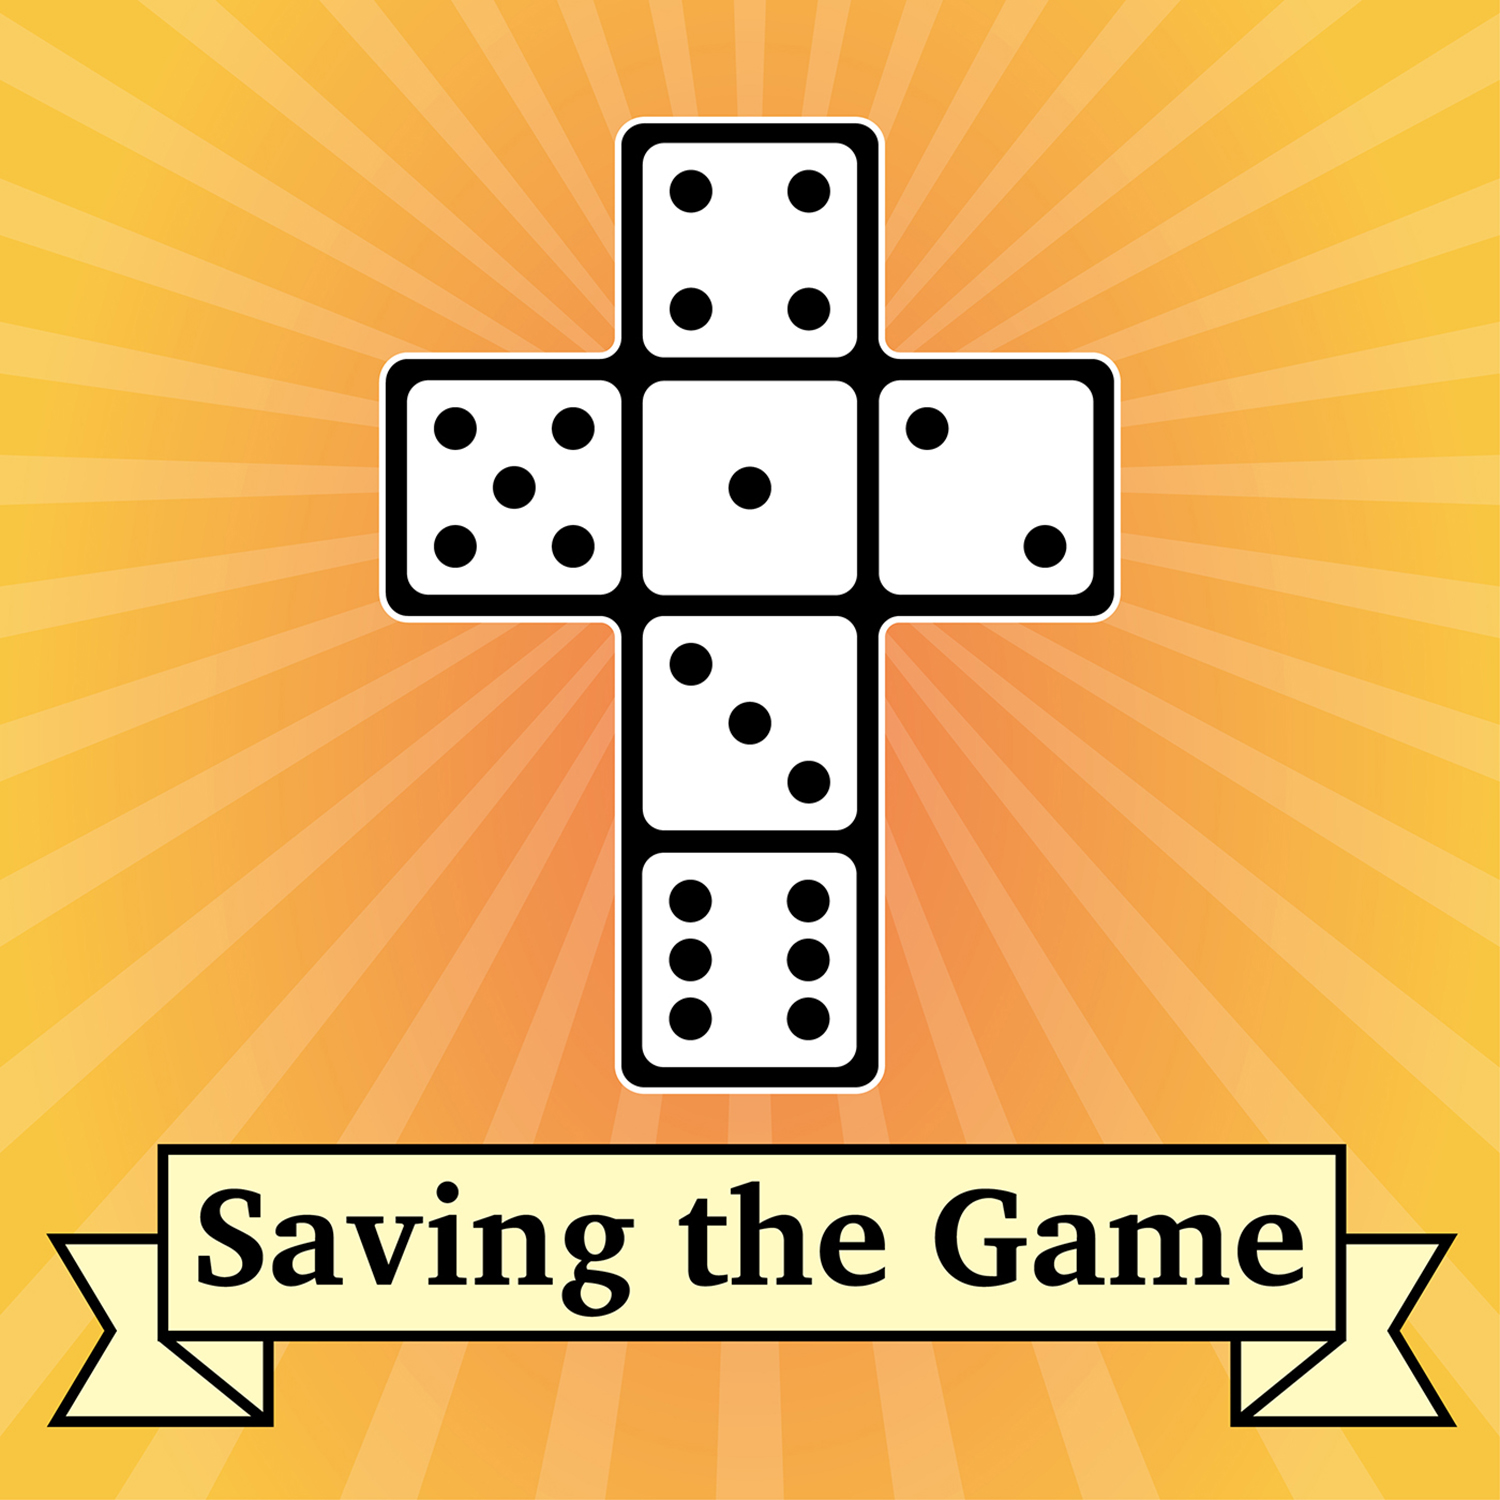 Saving the Game logo